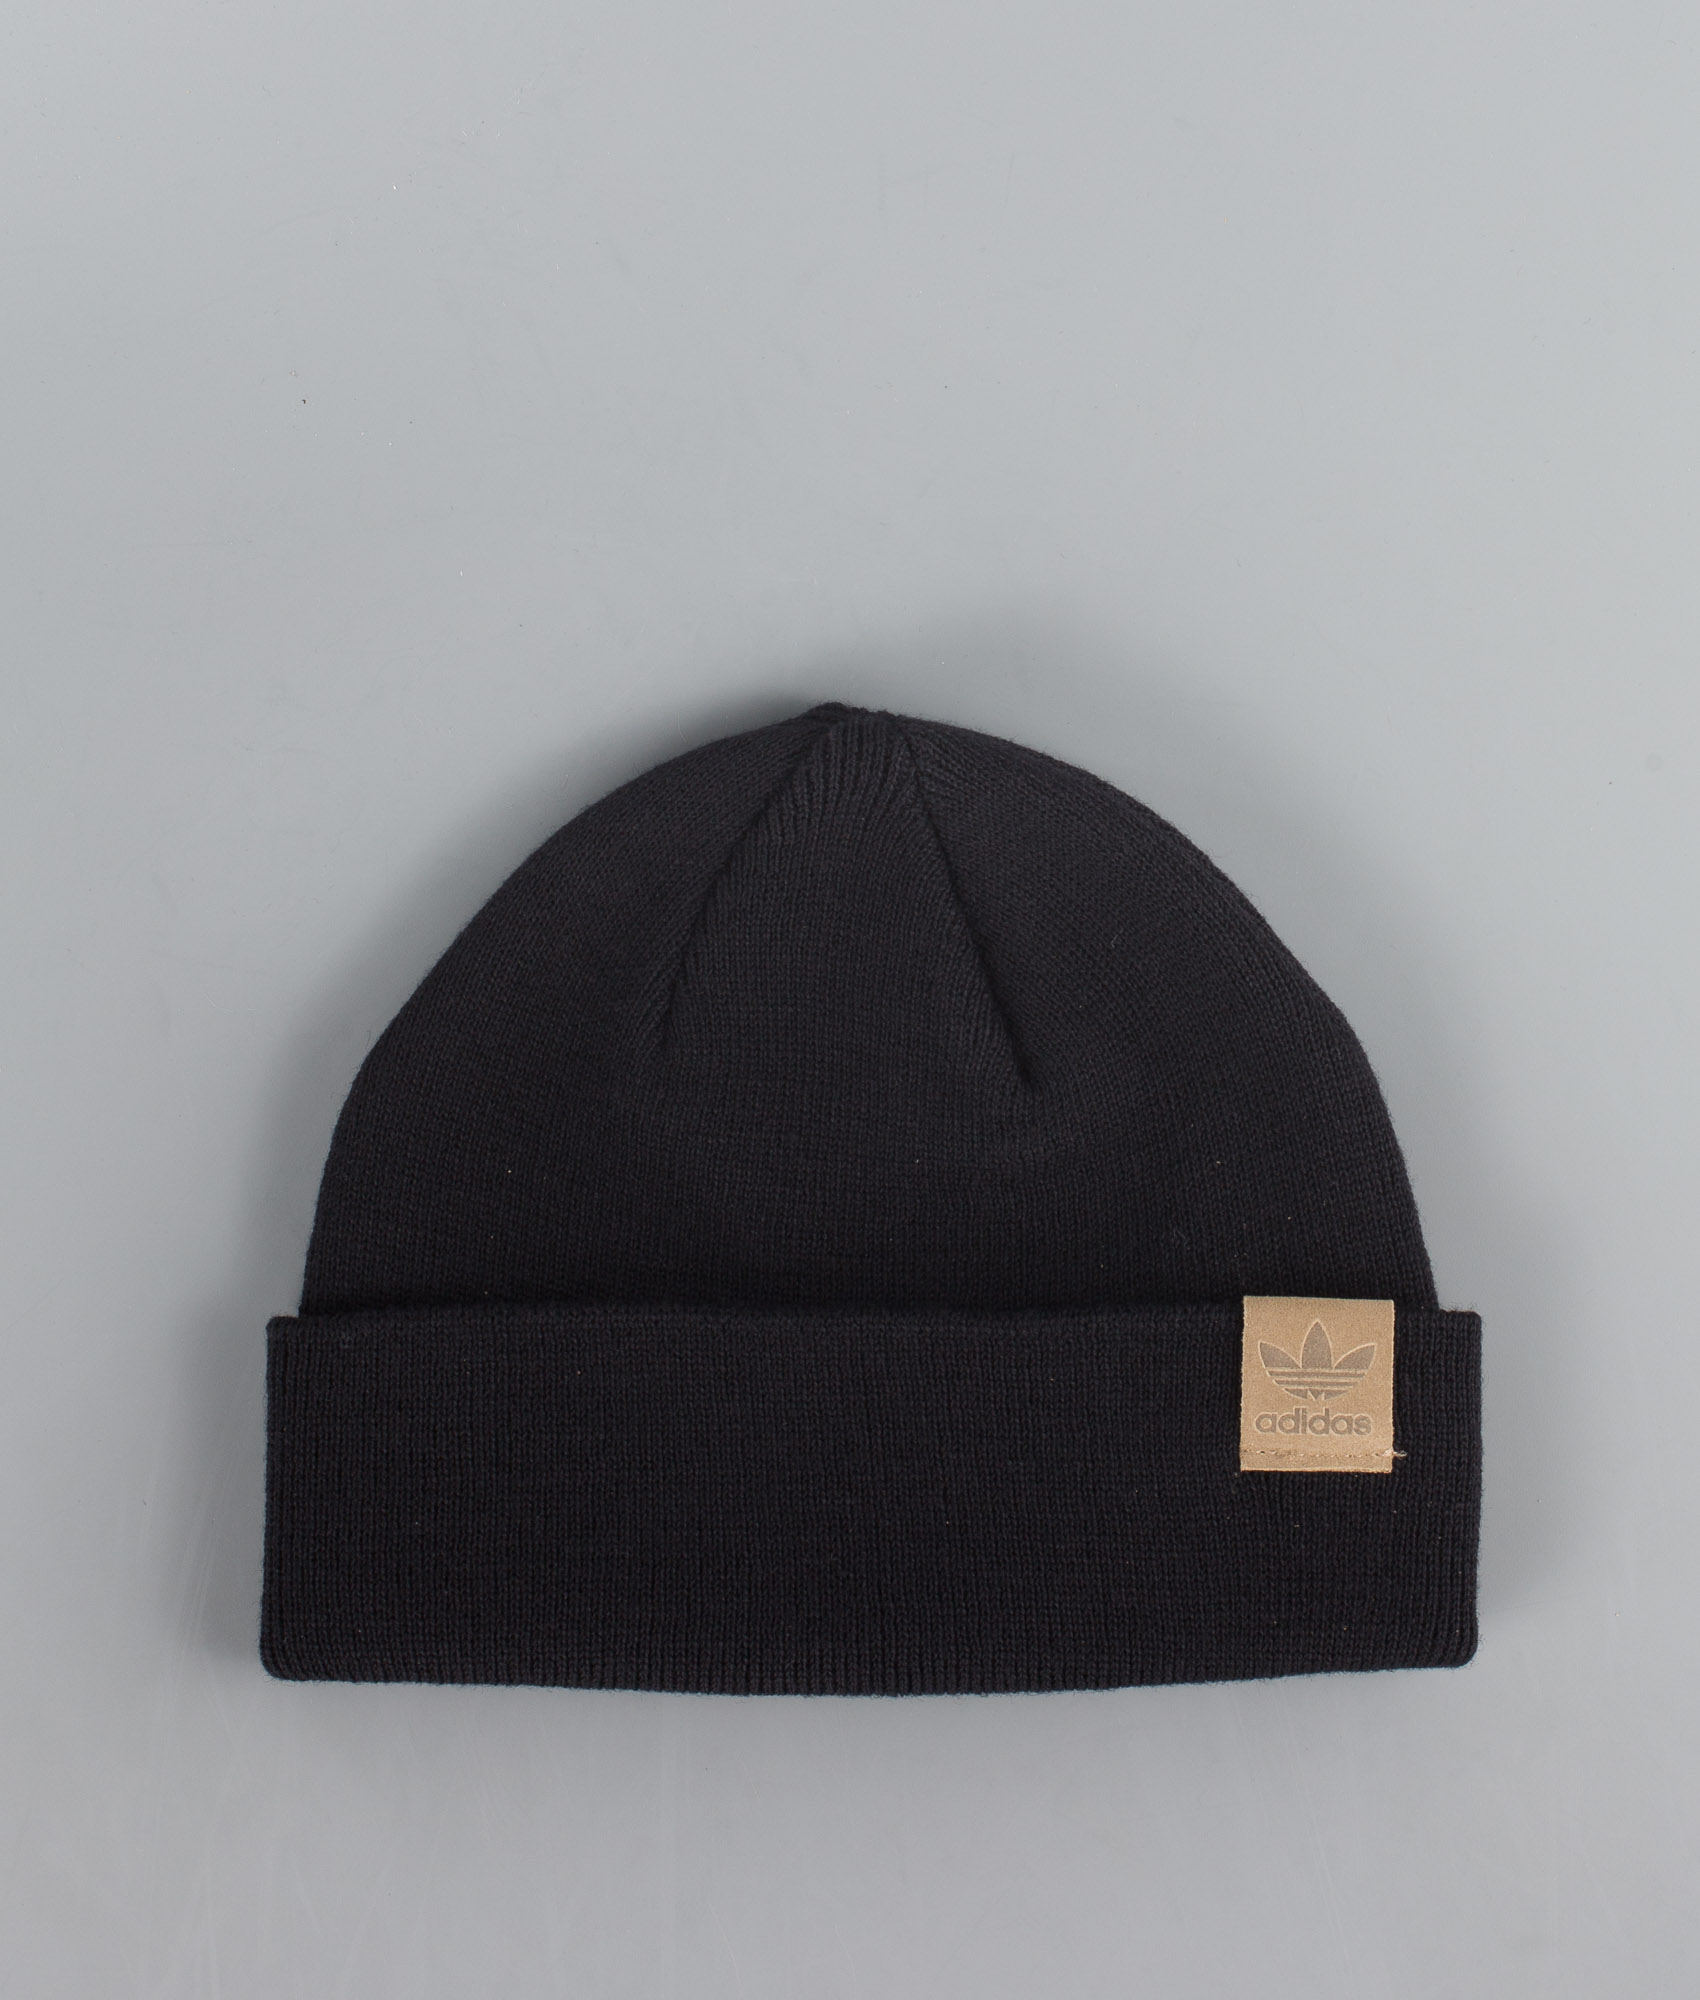 b0c49a2f3ae25 where to buy adidas originals trefoil beanie black ay9330 71d60 6e431   where to buy adidas originals wool beanie 2c826 68737